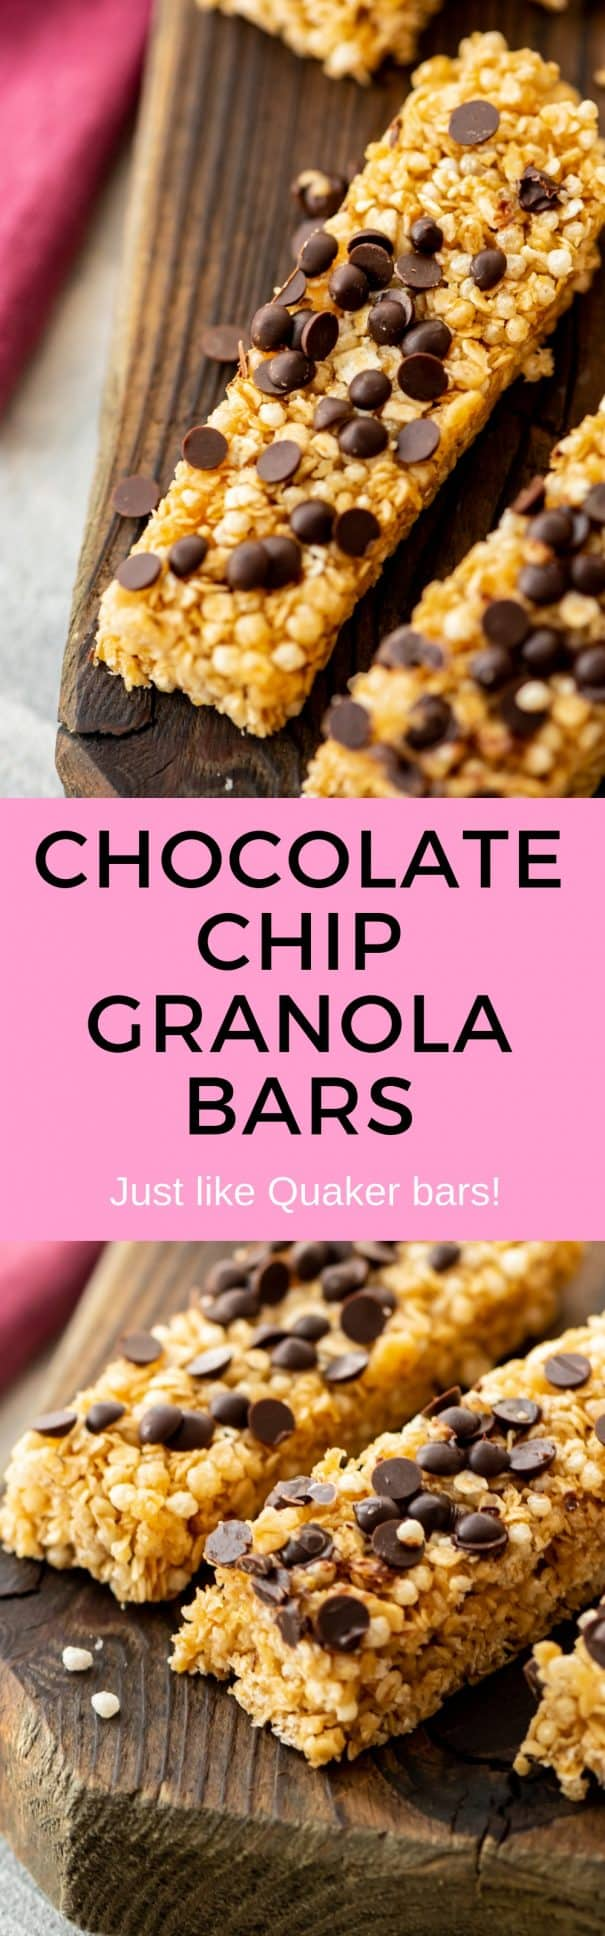 Easy to make homemade chocolate chip granola bars recipe!  They taste just like Quaker Granola bars but are made with simple, healthy ingredients! Kid, toddler snack approved!